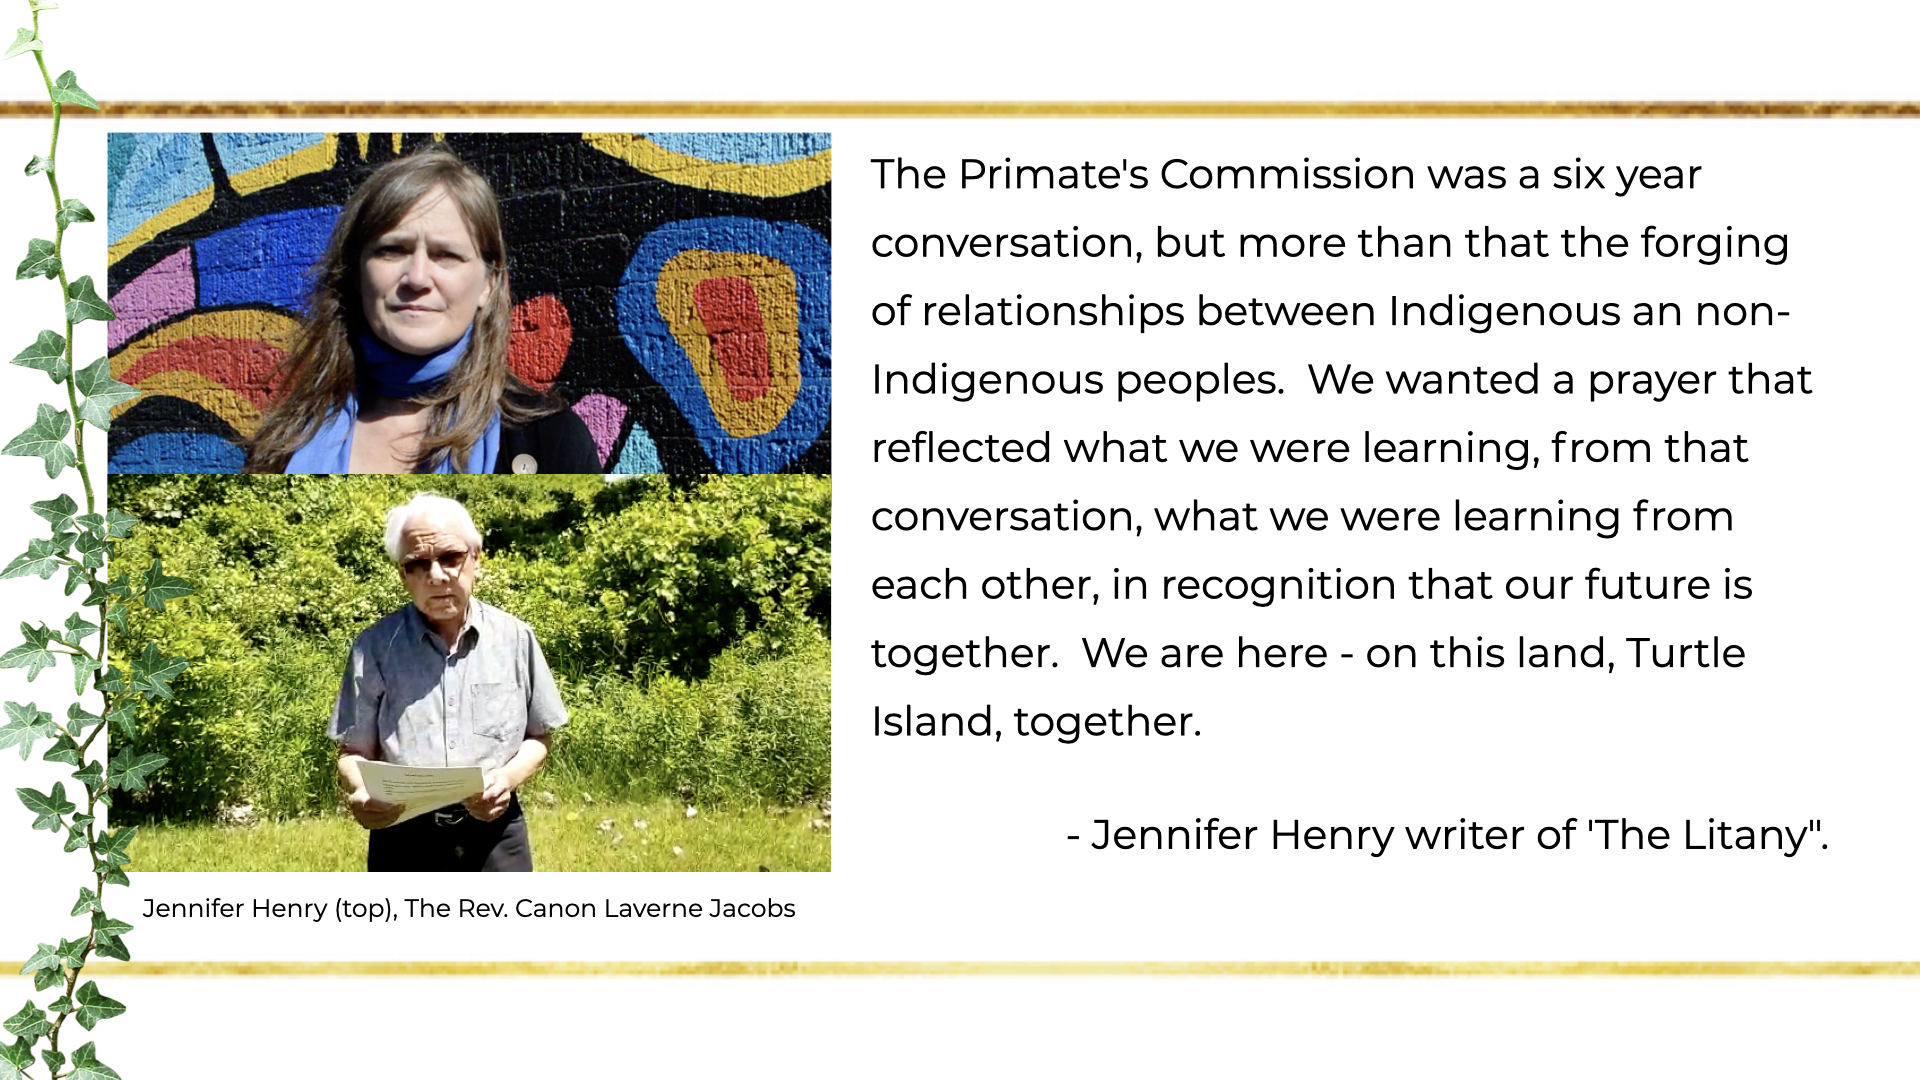 The Primate's Commission was a six year conversation, but more than that the forging of relationships between Indigenous an non-Indigenous peoples.  We wanted a prayer that reflected what we were learning, from that conversation, what we were learning from each other, in recognition that our future is together.  We are here - on this land, Turtle Island, together. -- Jennifer Henry writer of 'The Litany